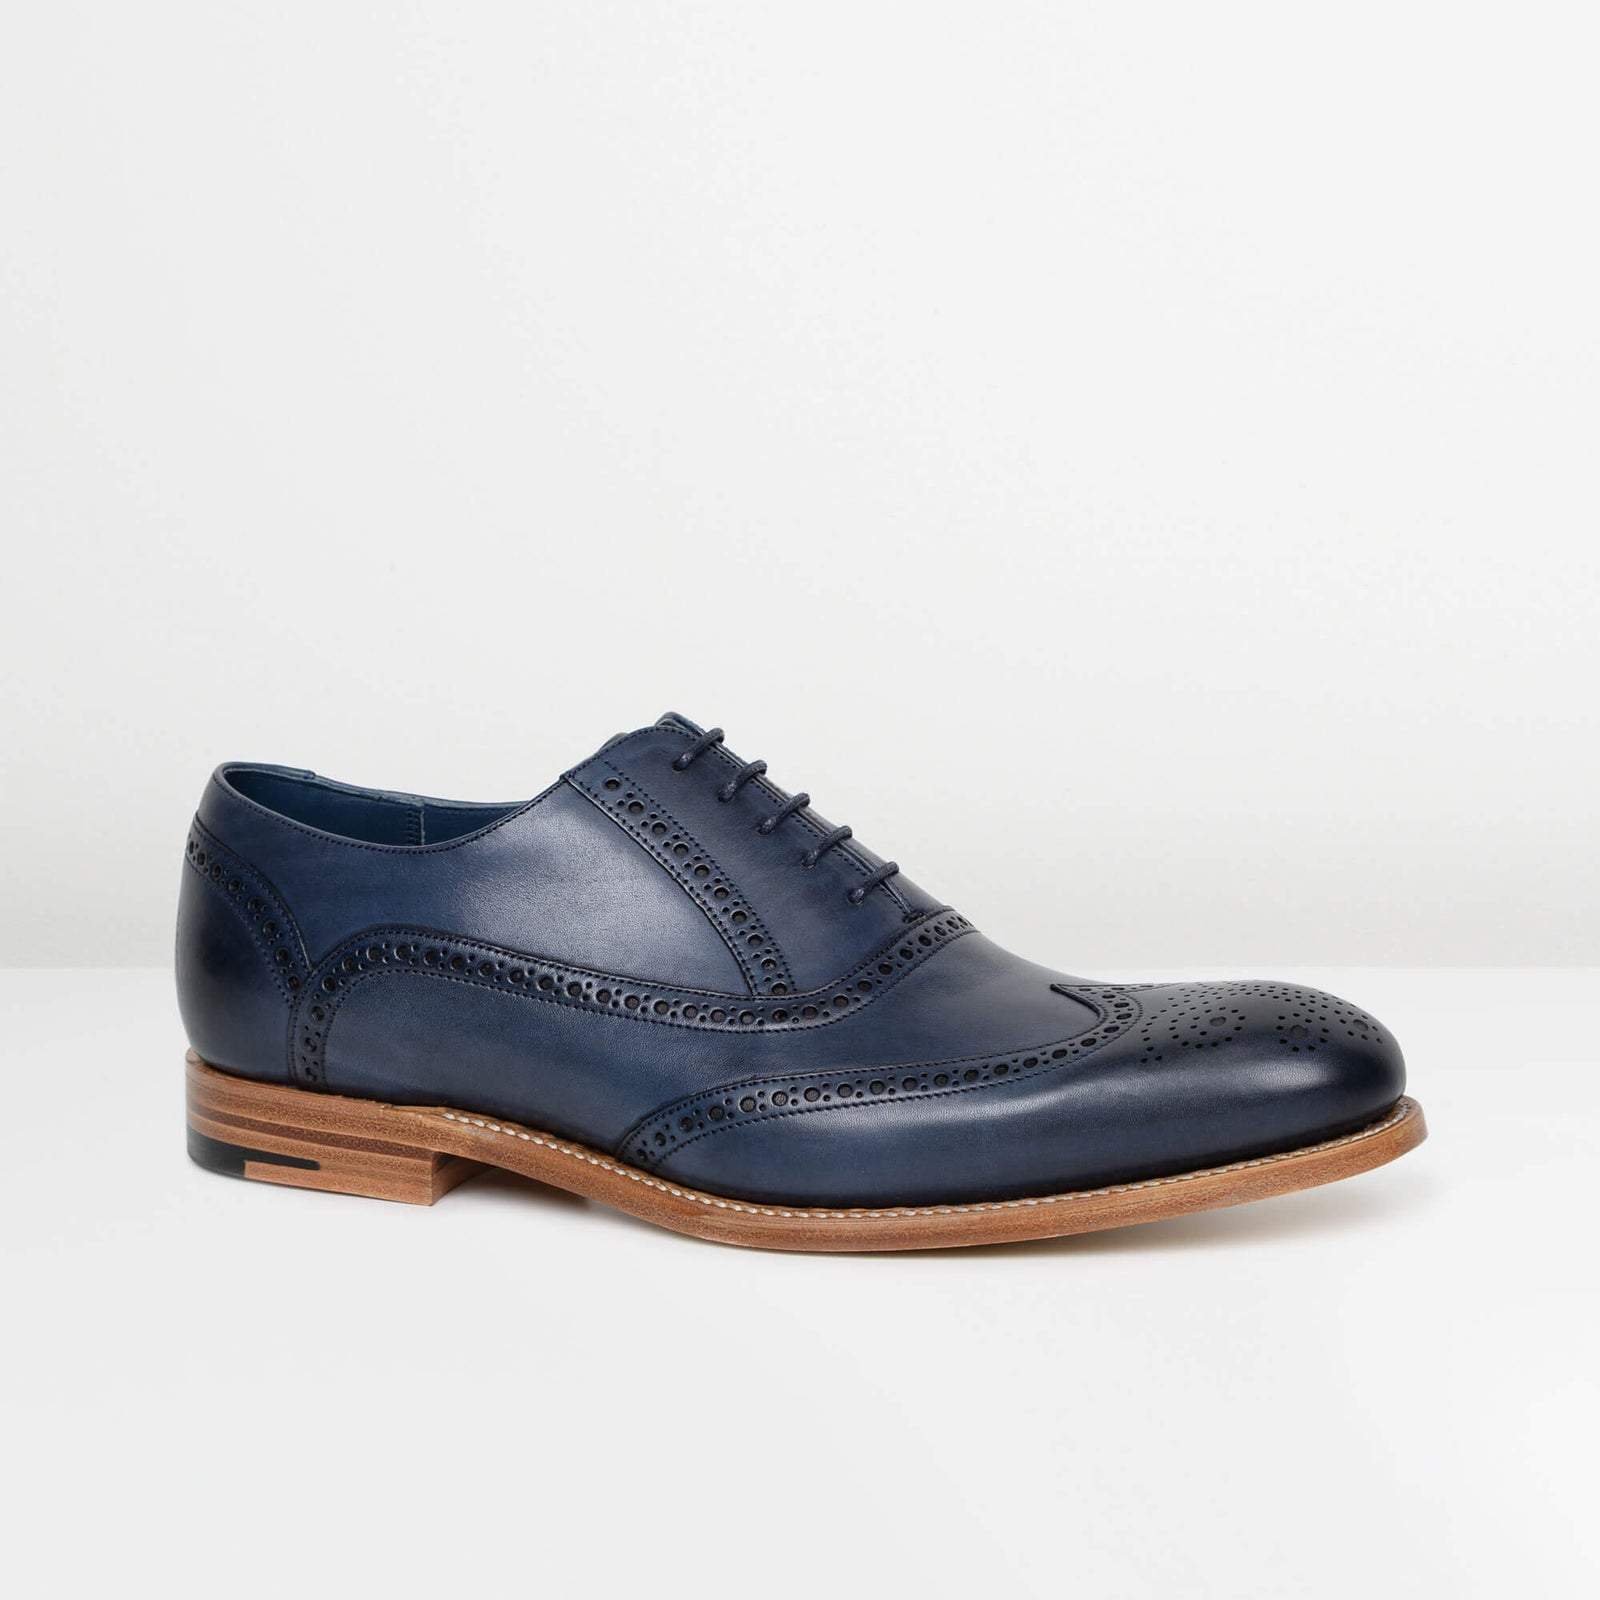 Navy Valiant Oxford Brogues